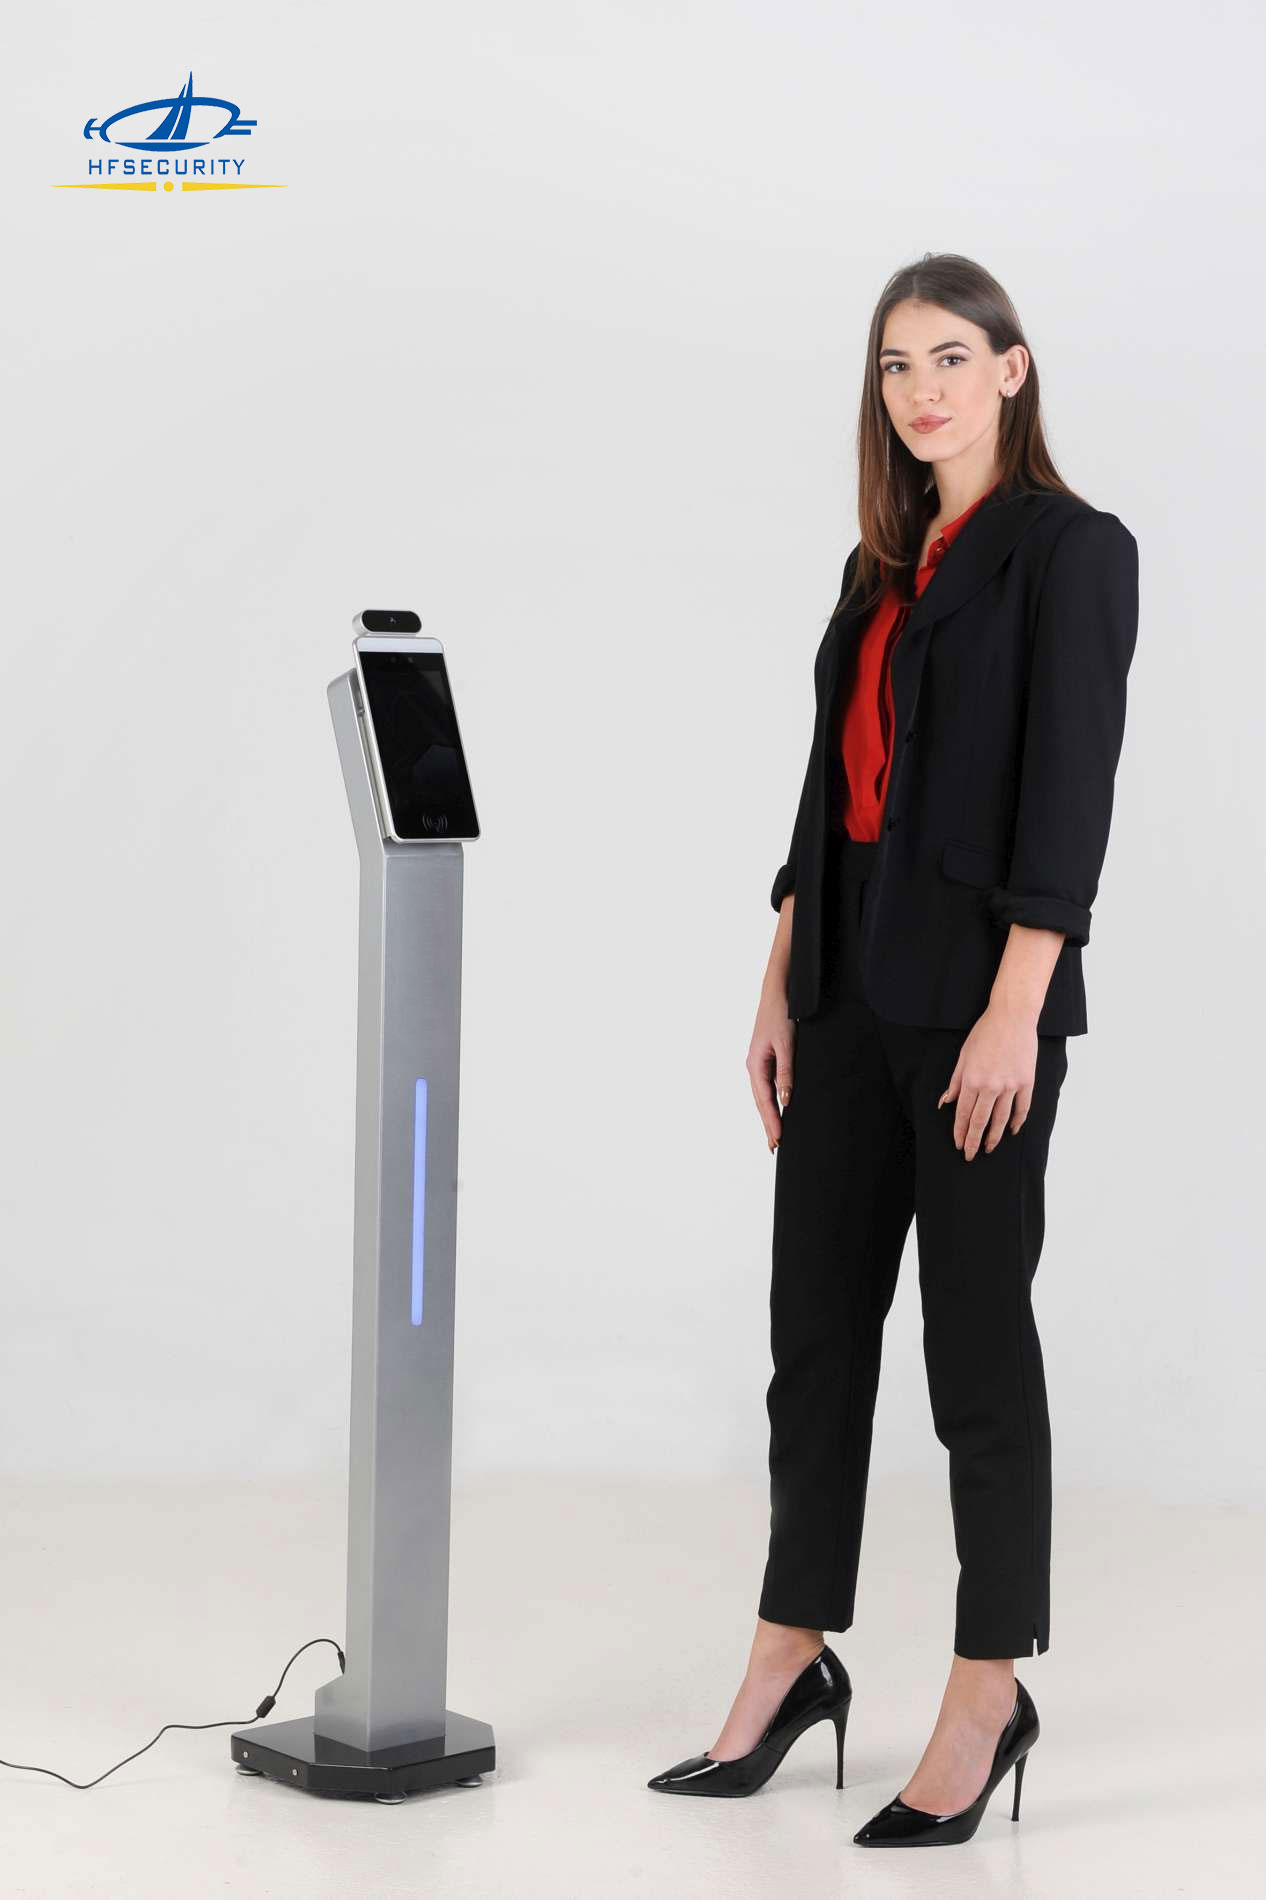 HFSecurity 8 inch dynamic face recognition device